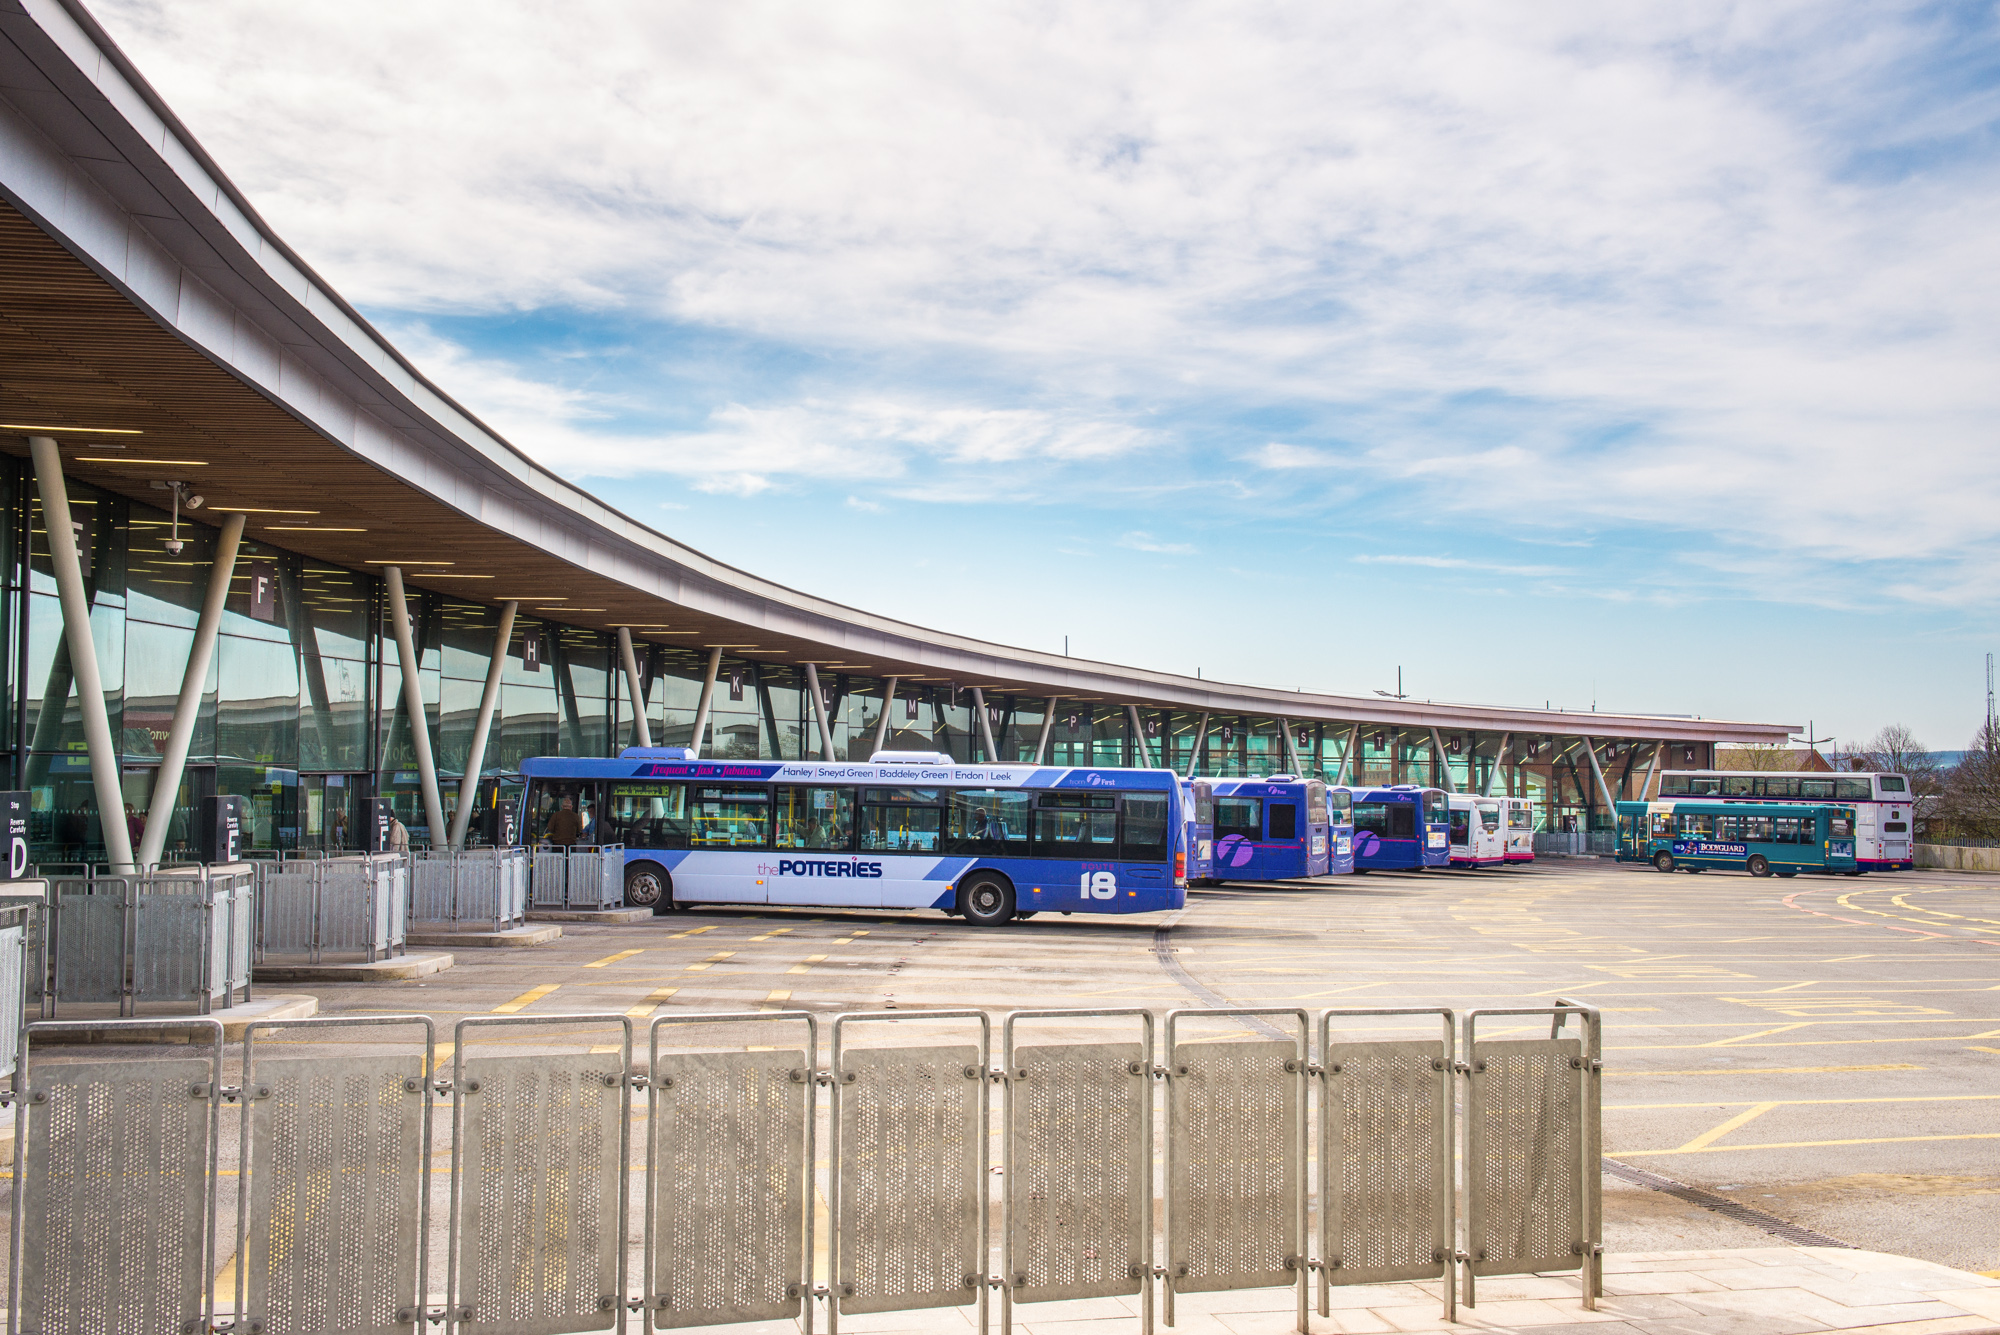 Stoke-on-Trent Bus Station - Grimshaw Architects